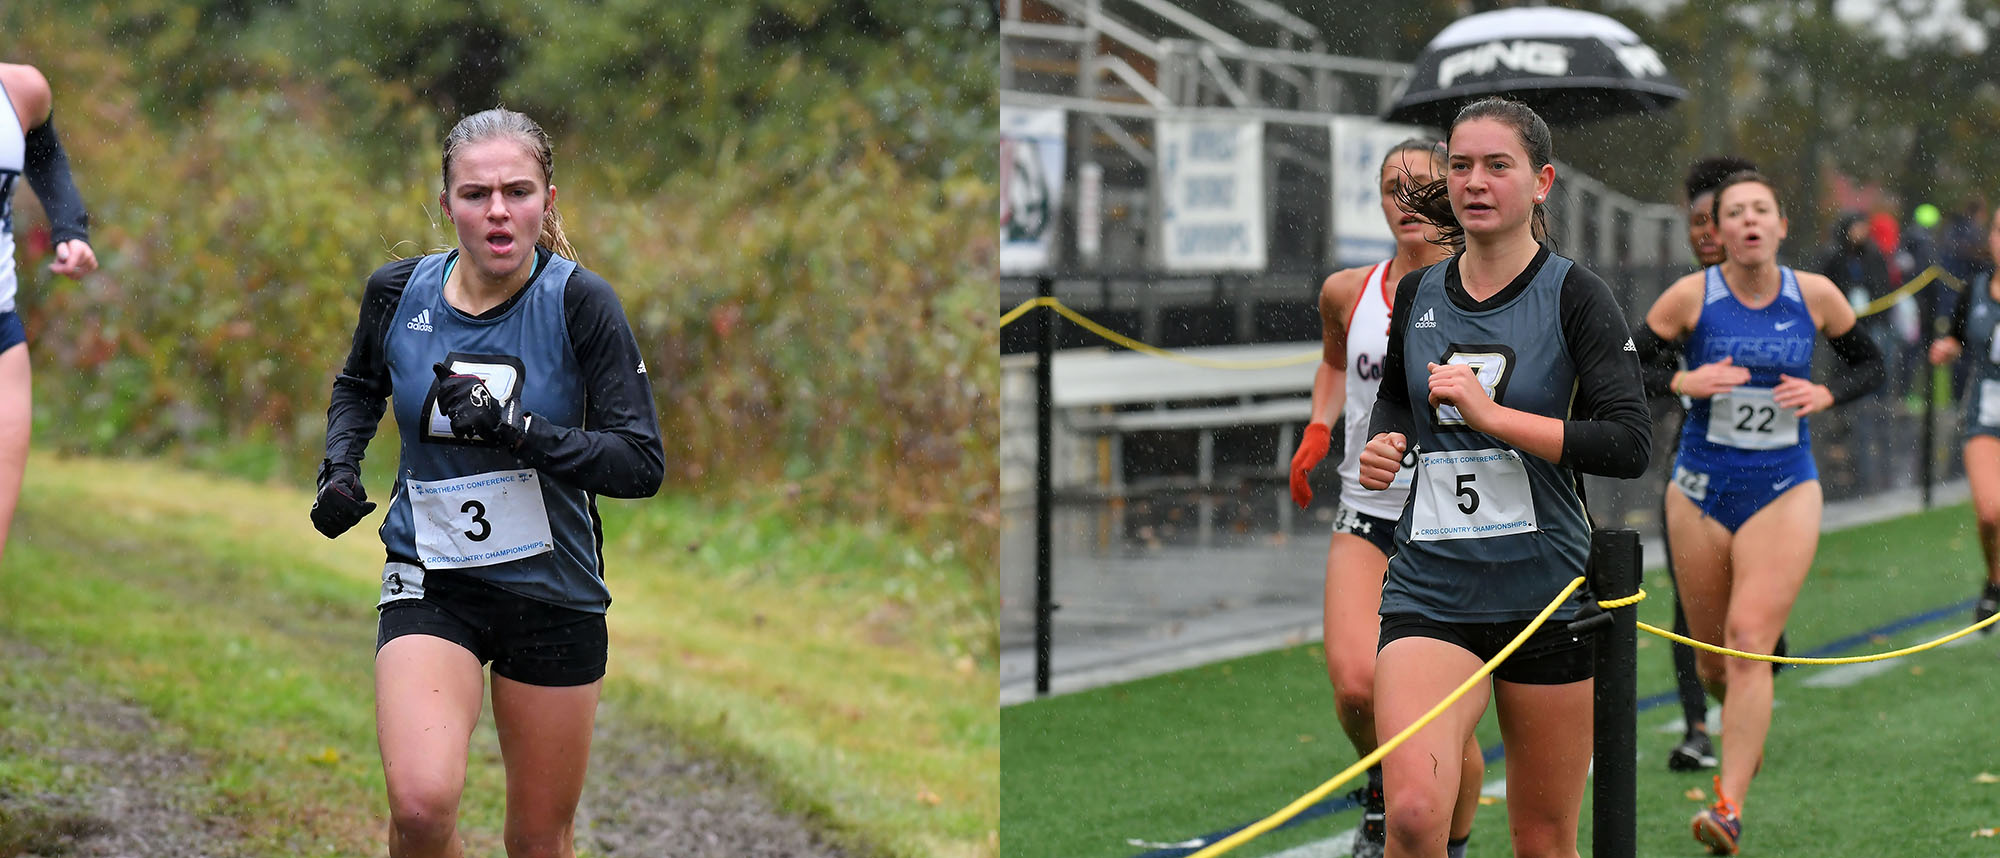 Ayres, Freeman earned NEC All-Rookie honors